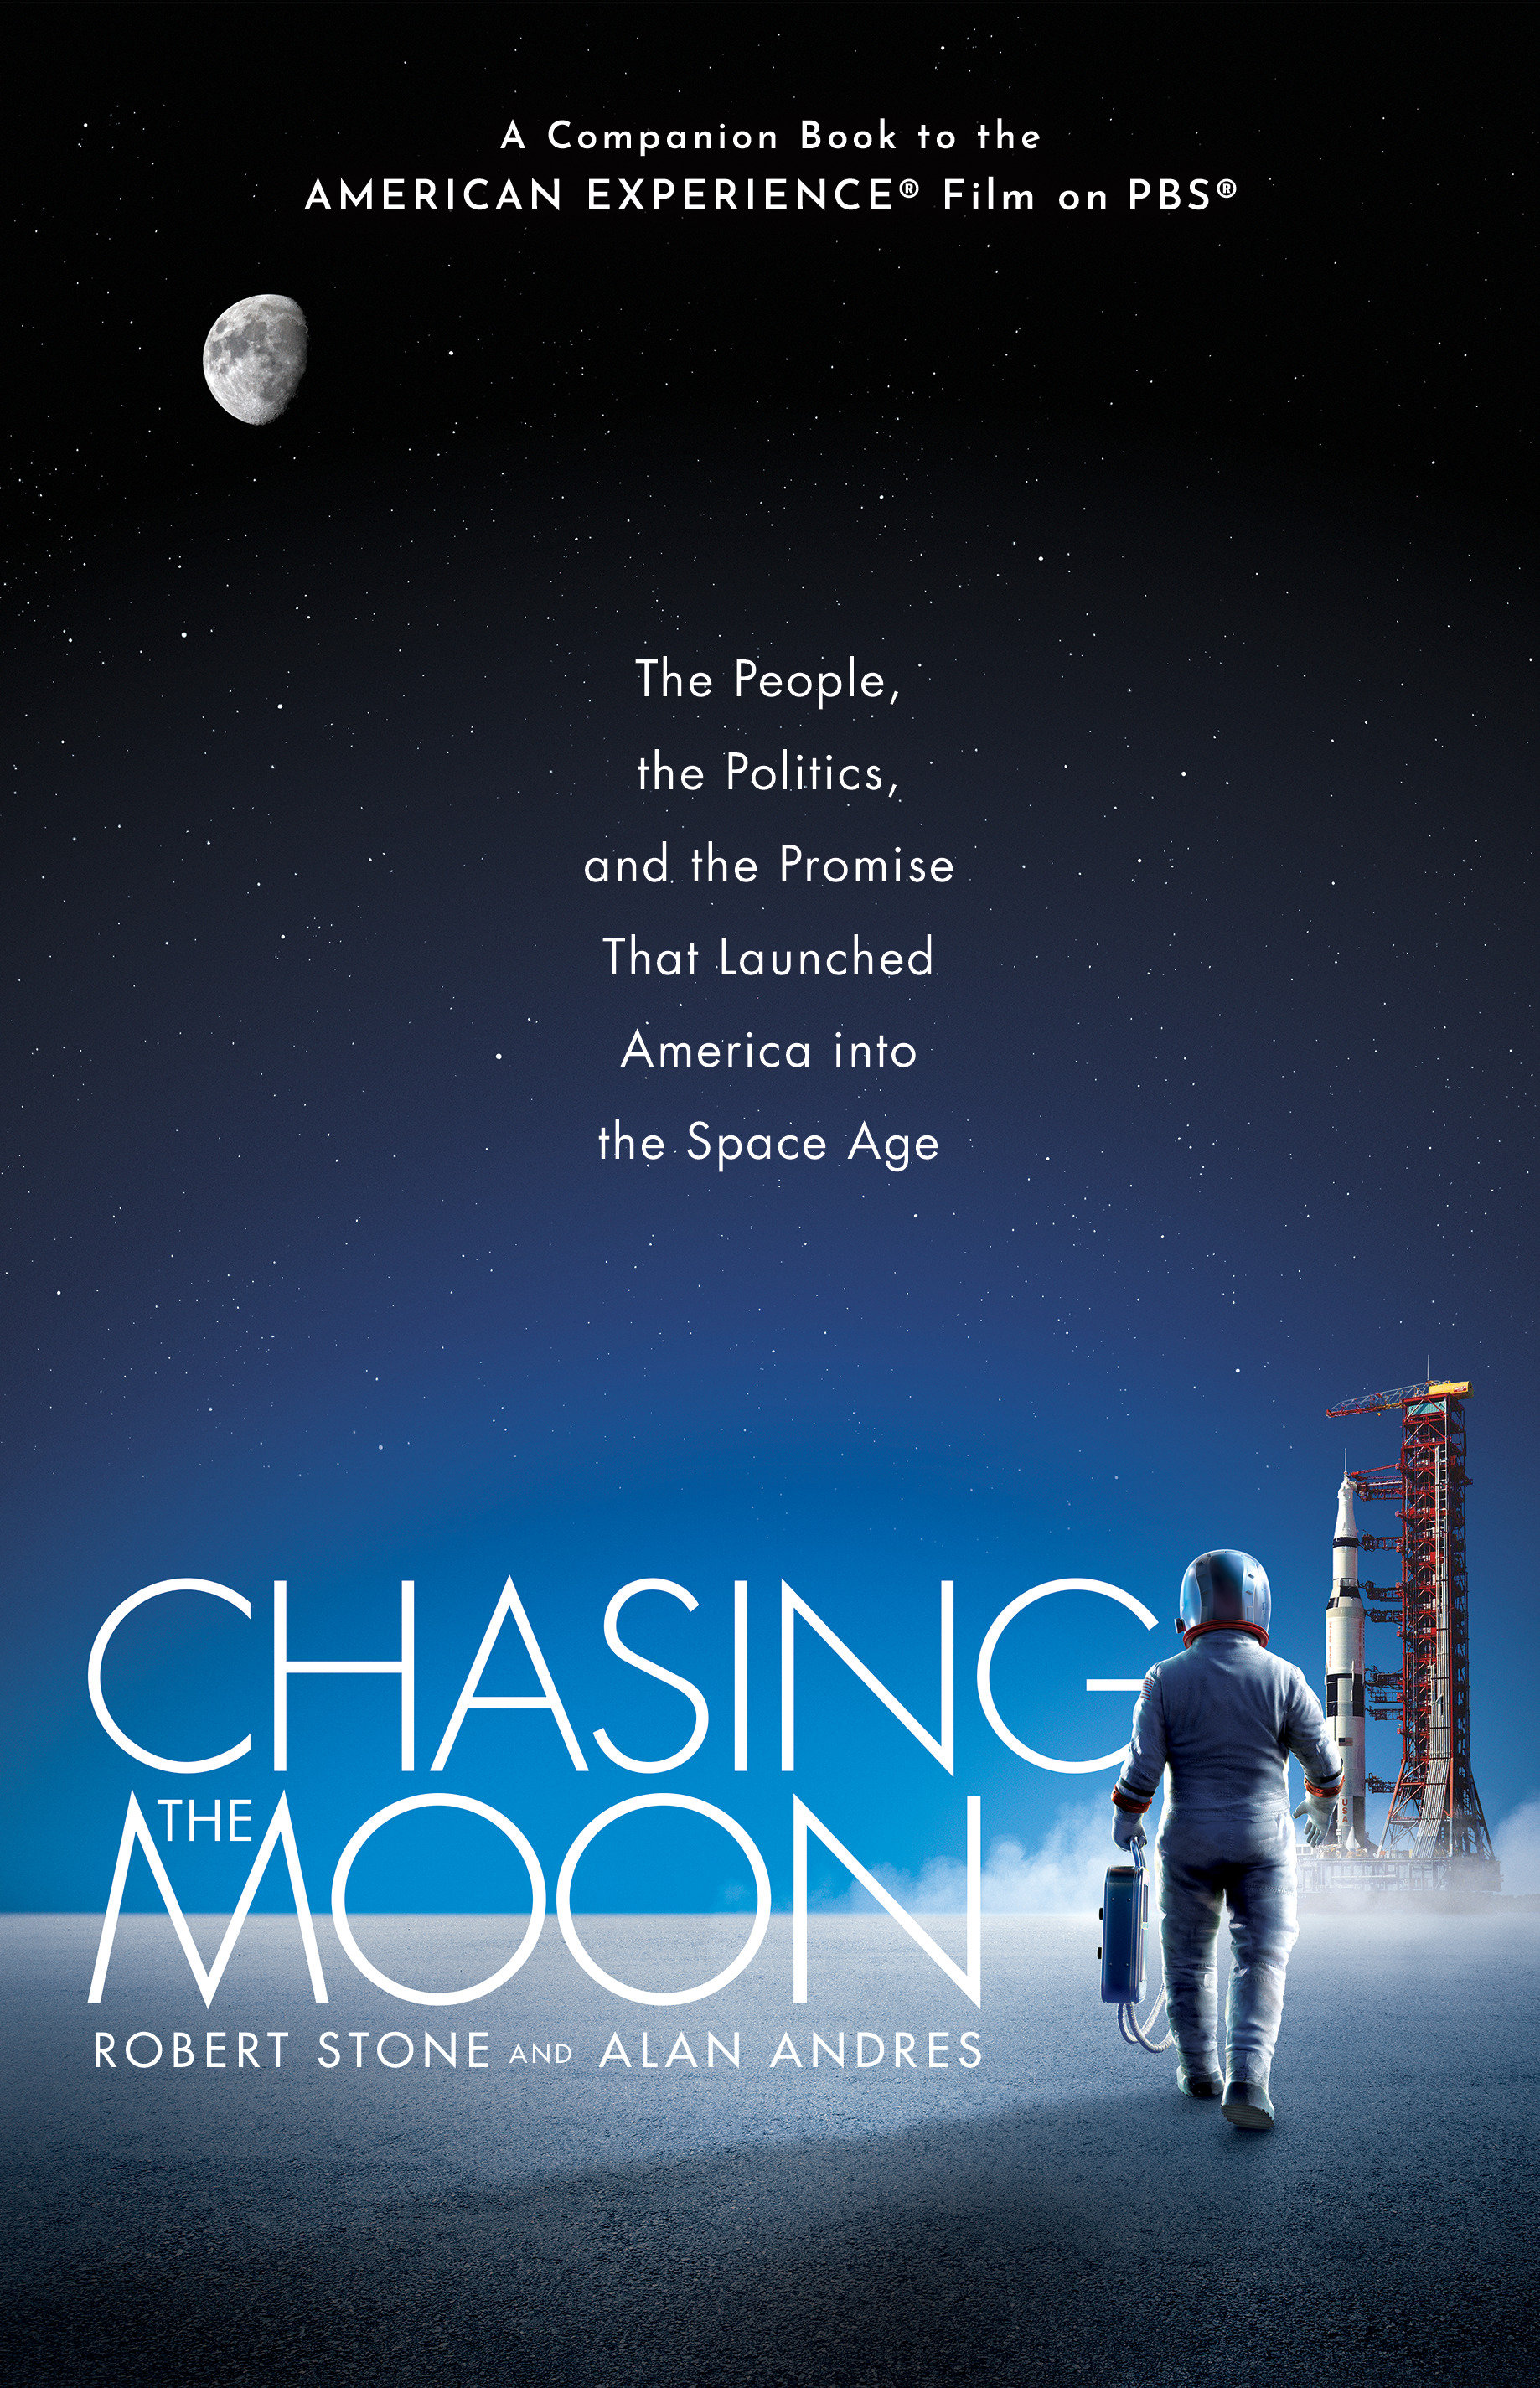 Chasing the Moon The People, the Politics, and the Promise That Launched America into the Space Age